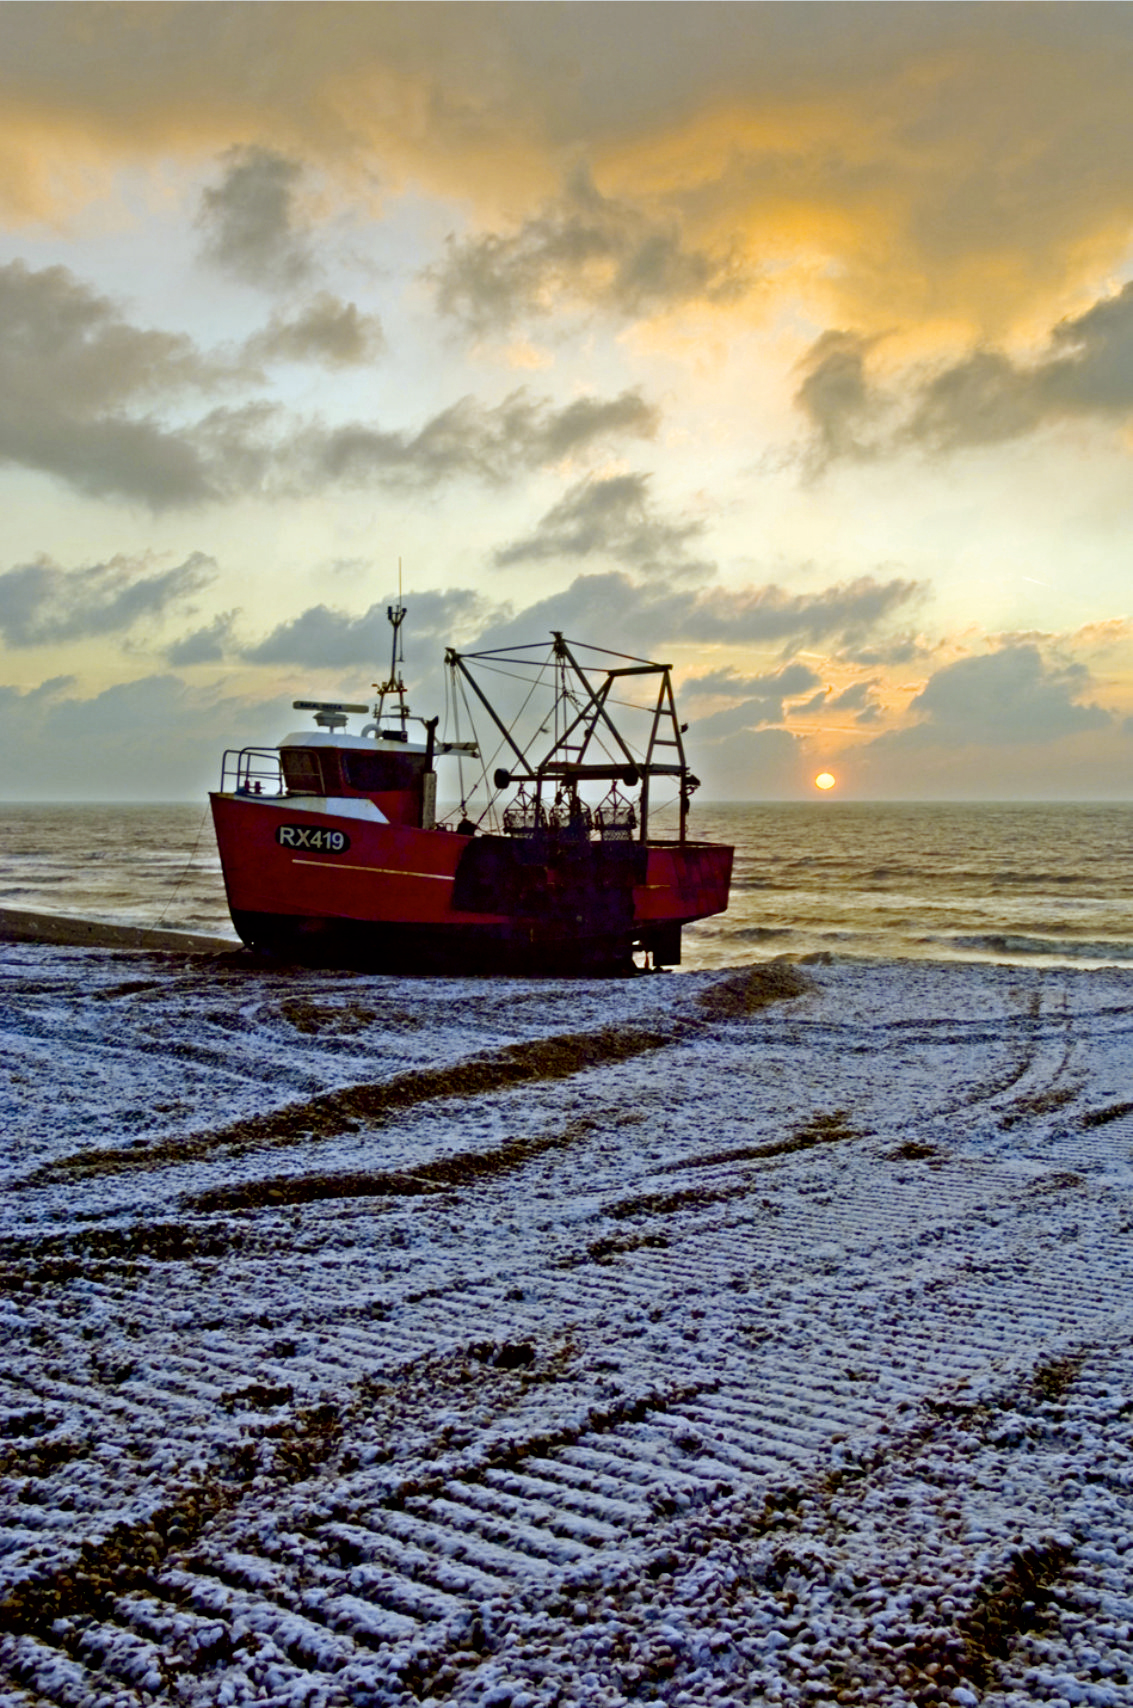 Fishermen's Mission Christmas card photography competition